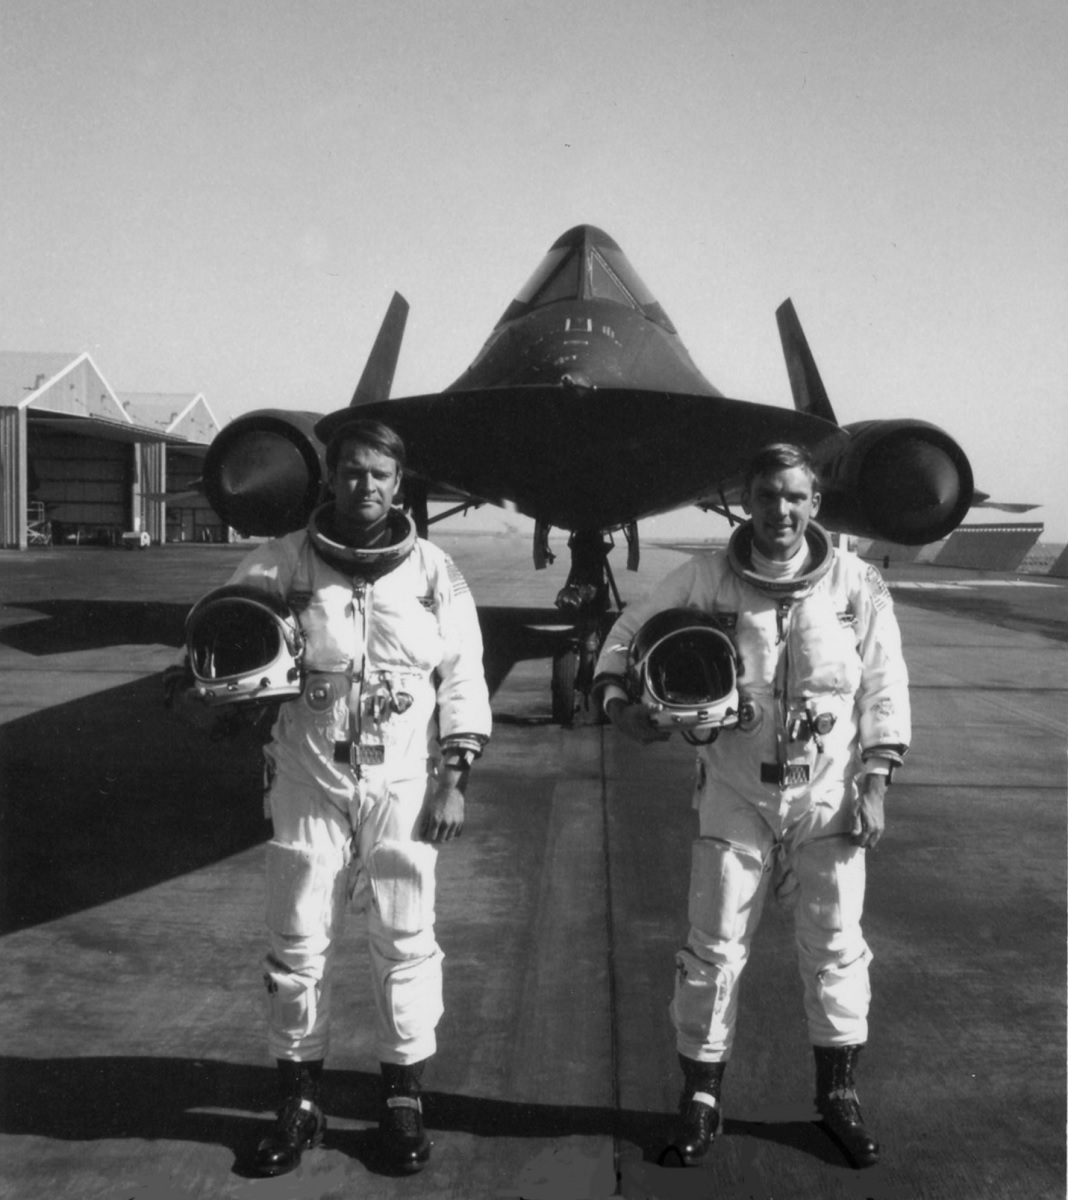 This SR-71 Blackbird crew set the Absolute Speed Record that still stands today